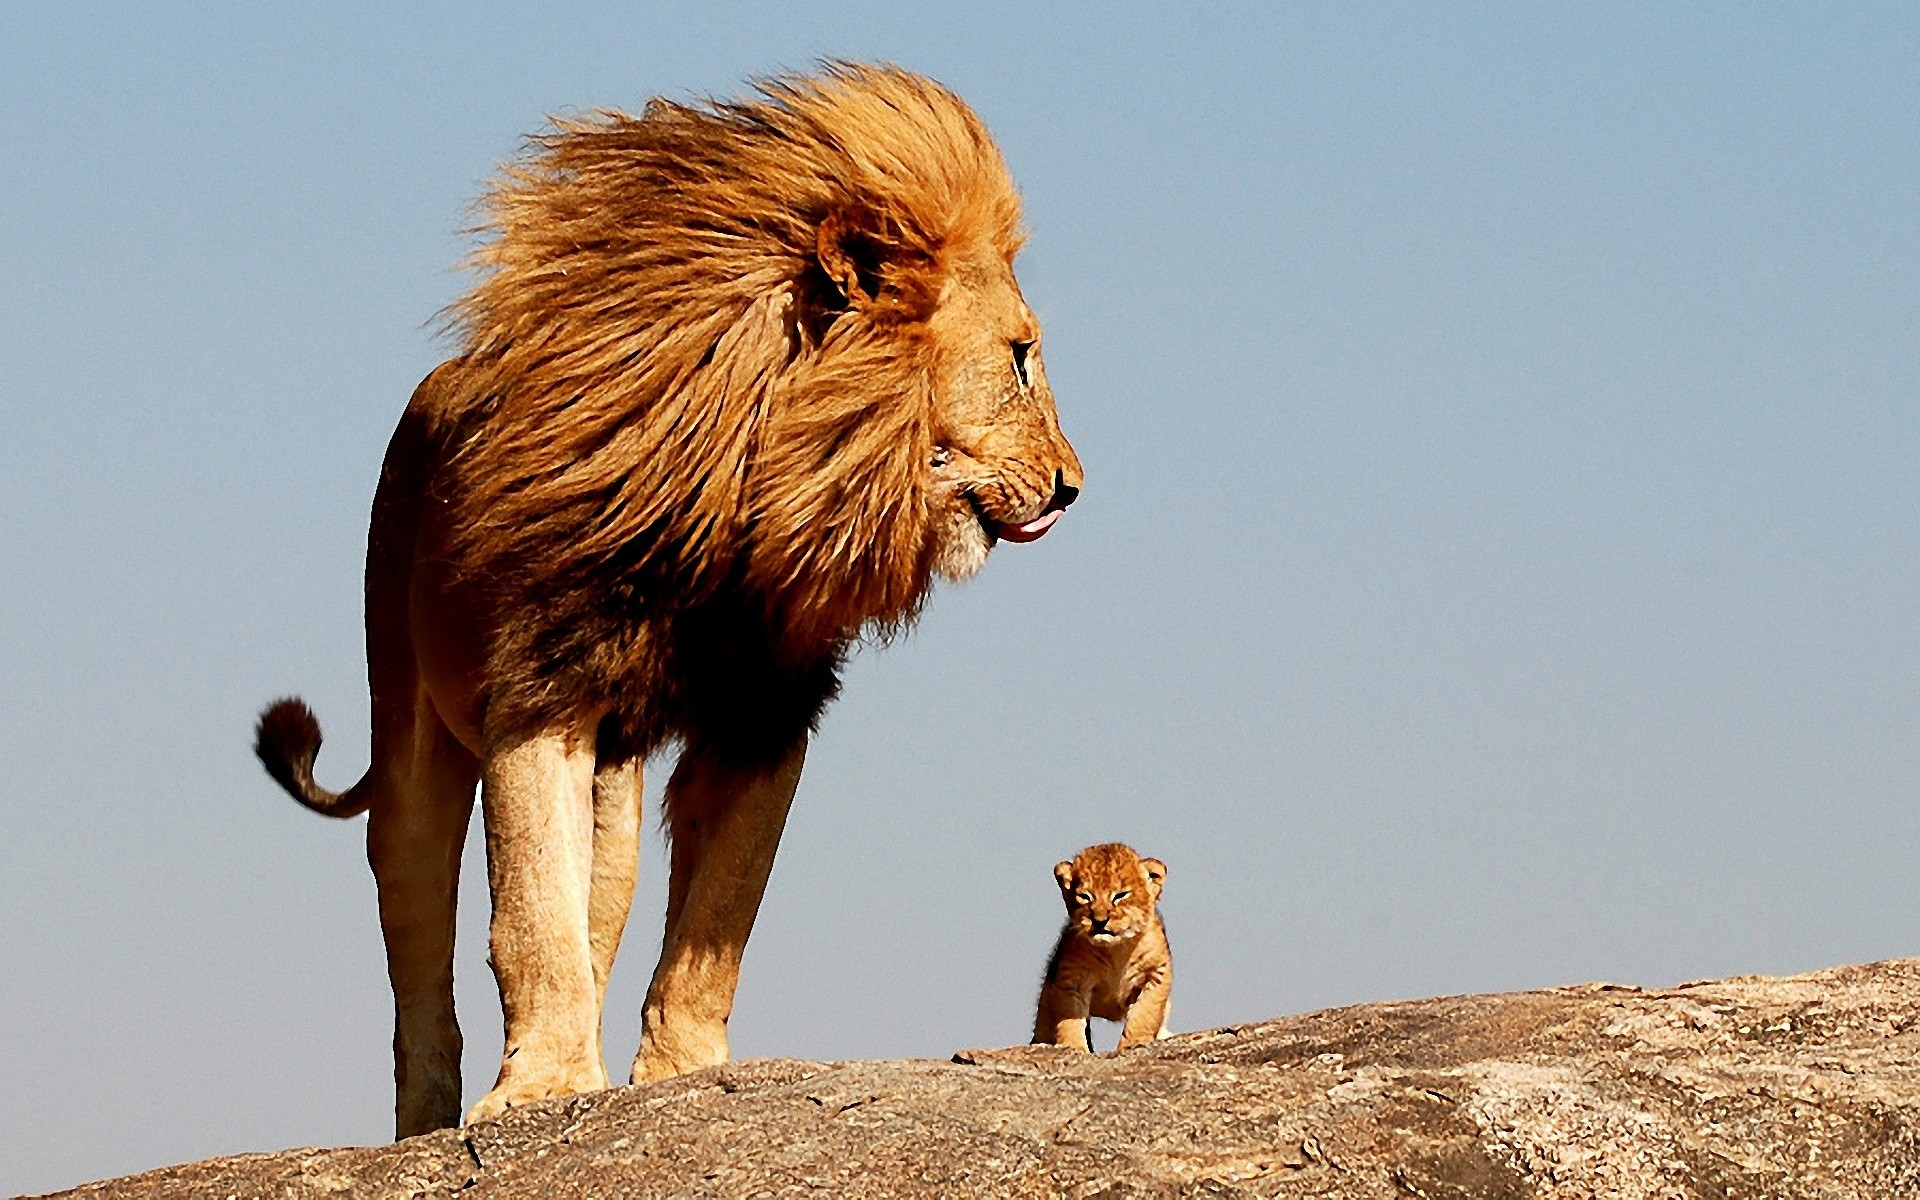 African Lion Wallpapers Hd Hd Wallpapers Desktop Images - African Lion With Baby - HD Wallpaper